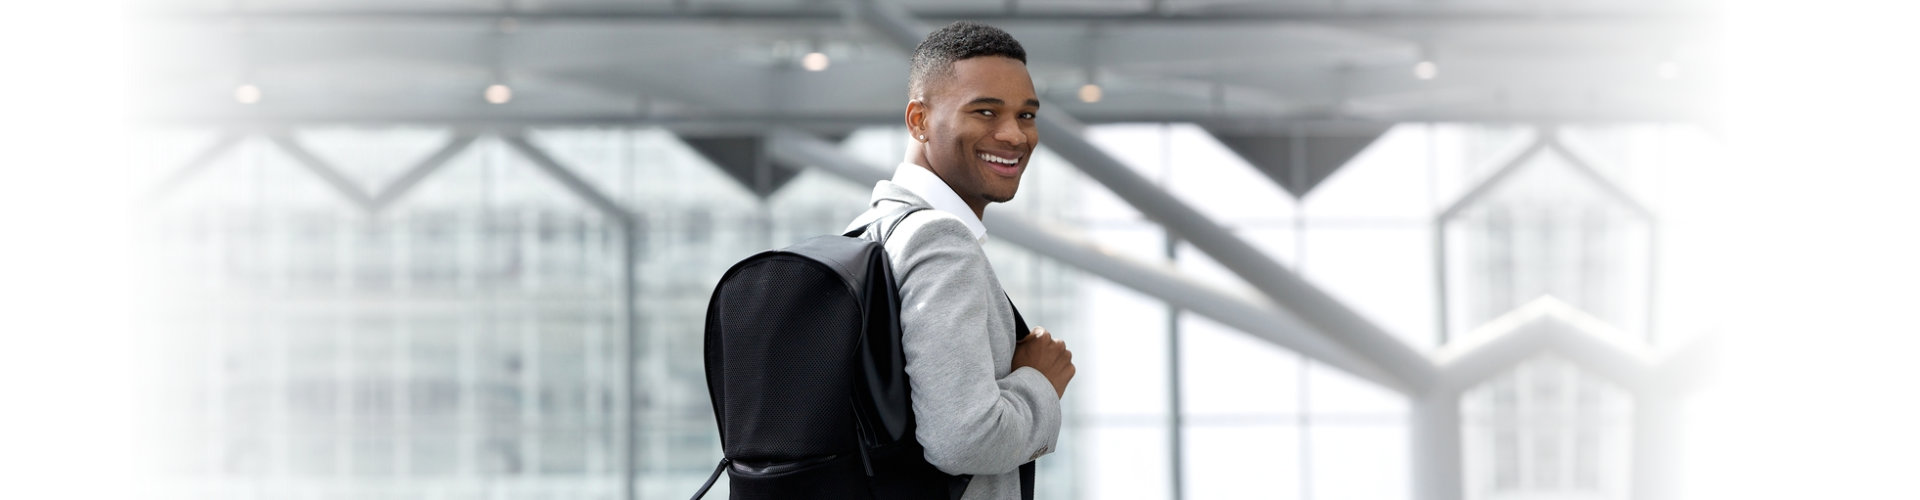 young man with his backpack